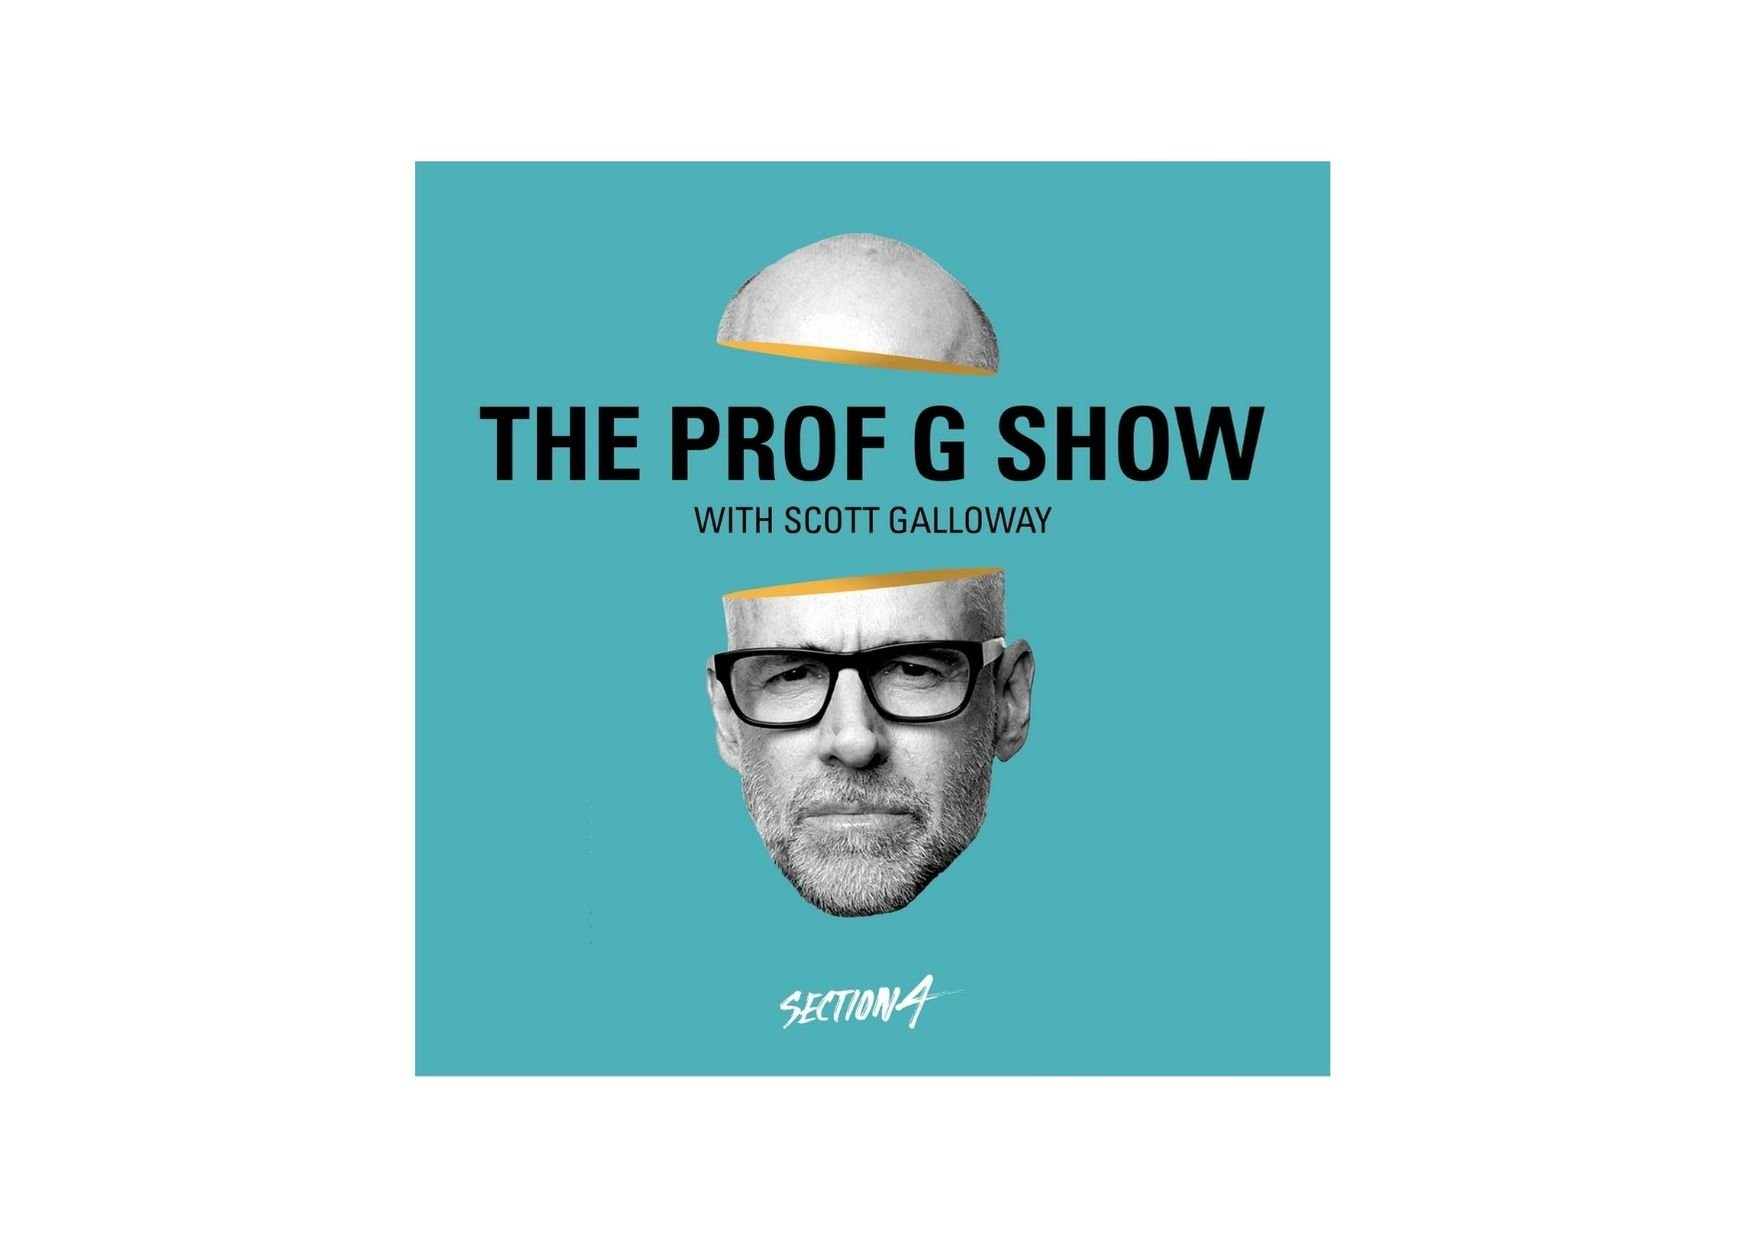 Noreena's interview on The Prof G Show with Scott Galloway